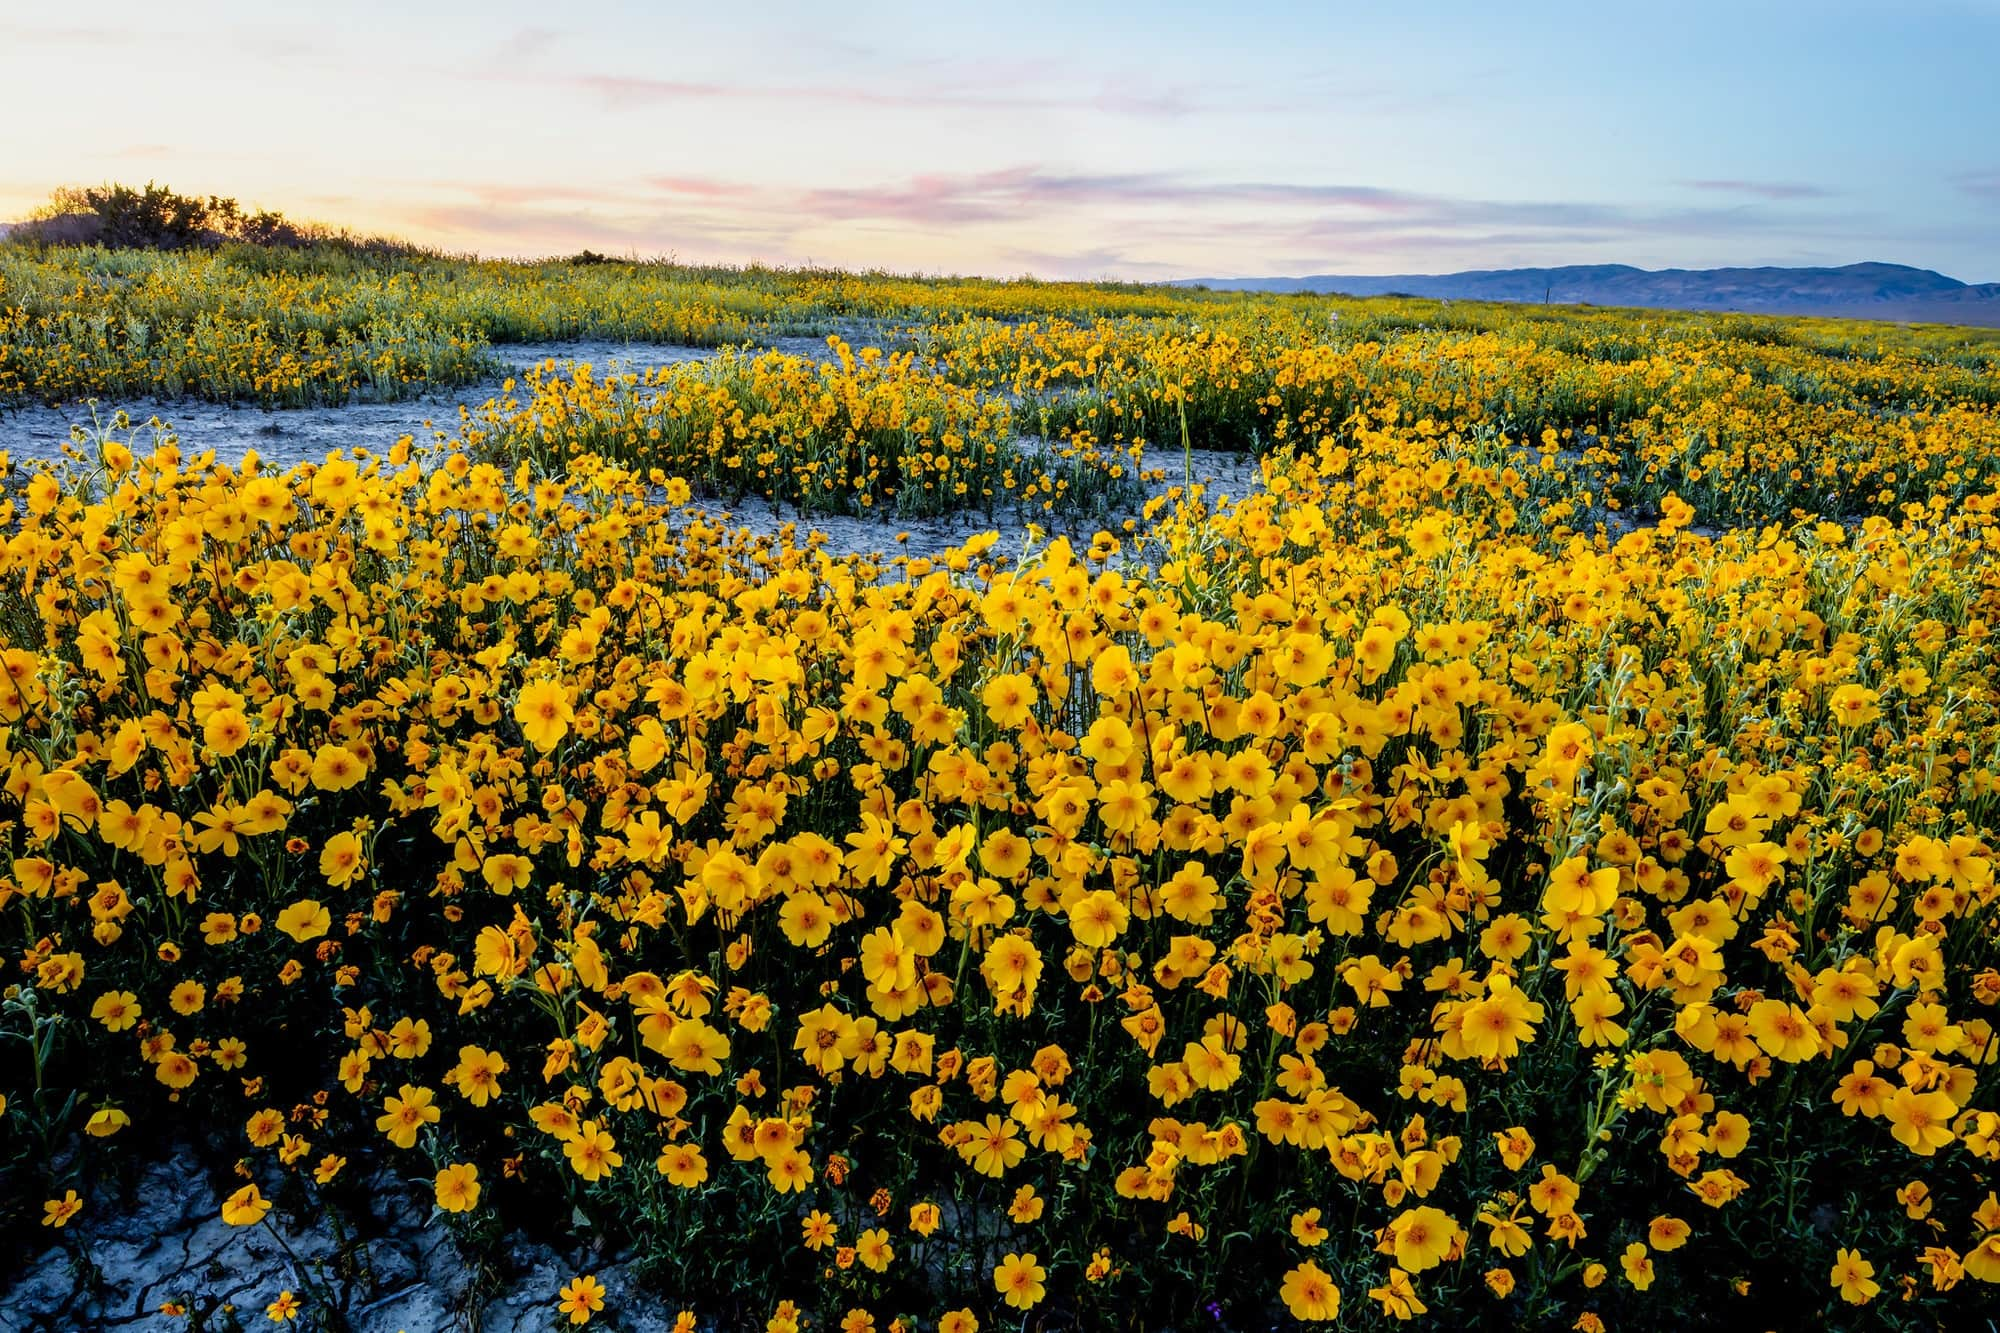 Carrizo Plain National Monument // Learn how national monuments are established, the details of President Trump's National Monument Review & how to submit comments so your voice is heard.